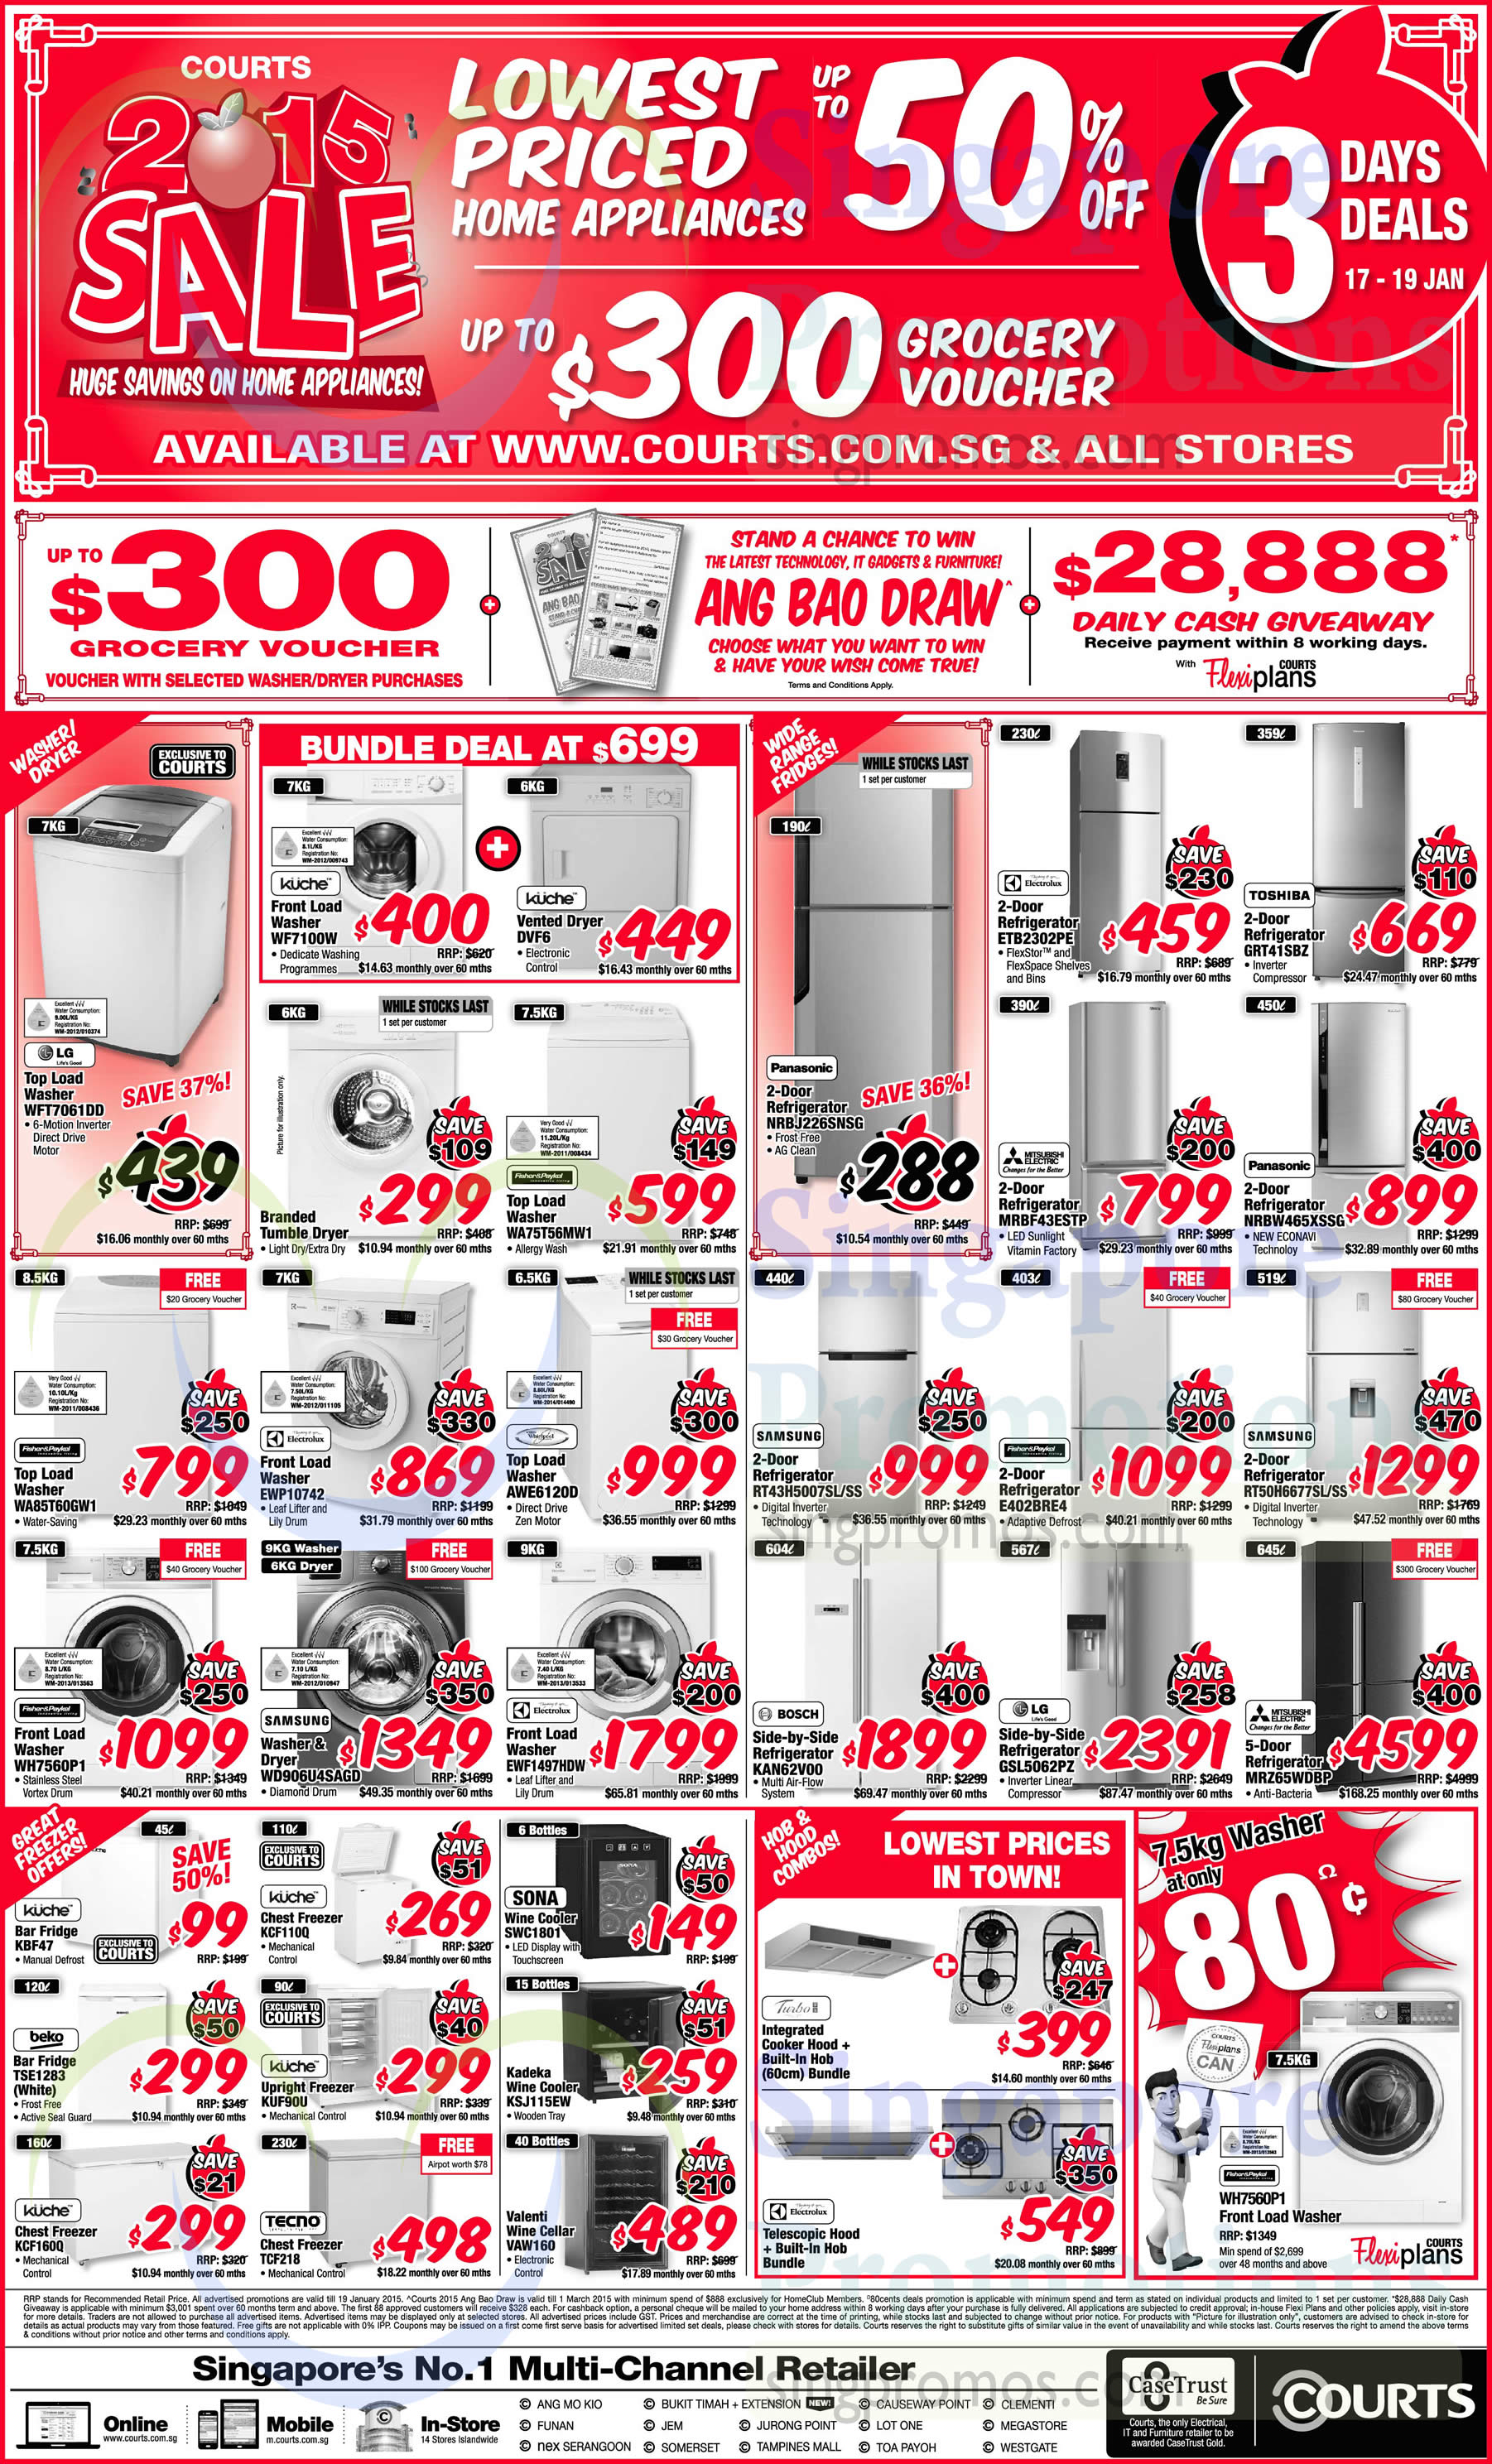 Featured image for Courts 2015 Sale Offers 17 - 19 Jan 2015